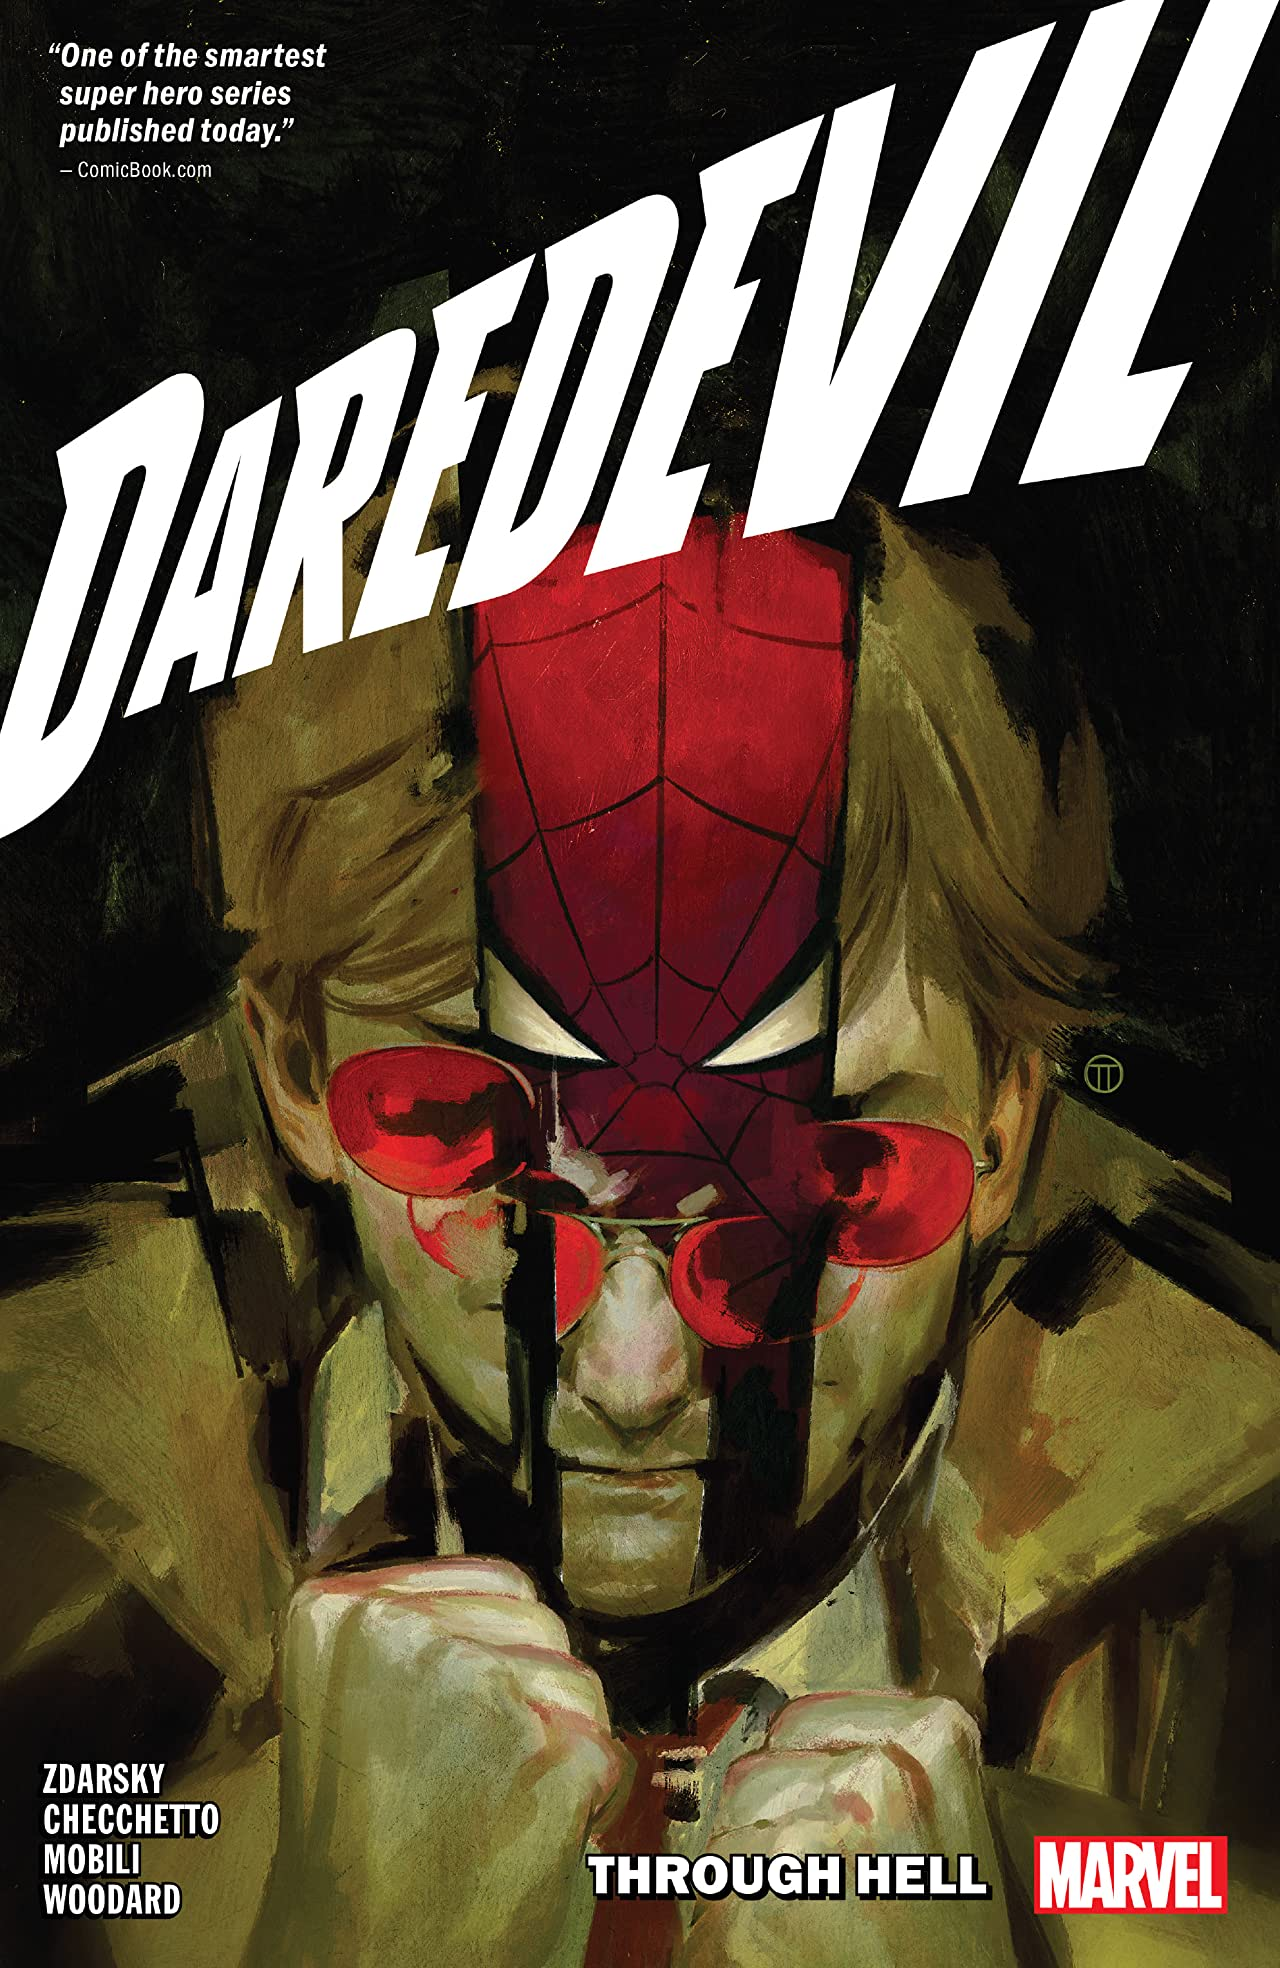 Daredevil by Chip Zdarsky, Vol. 3: Through Hell